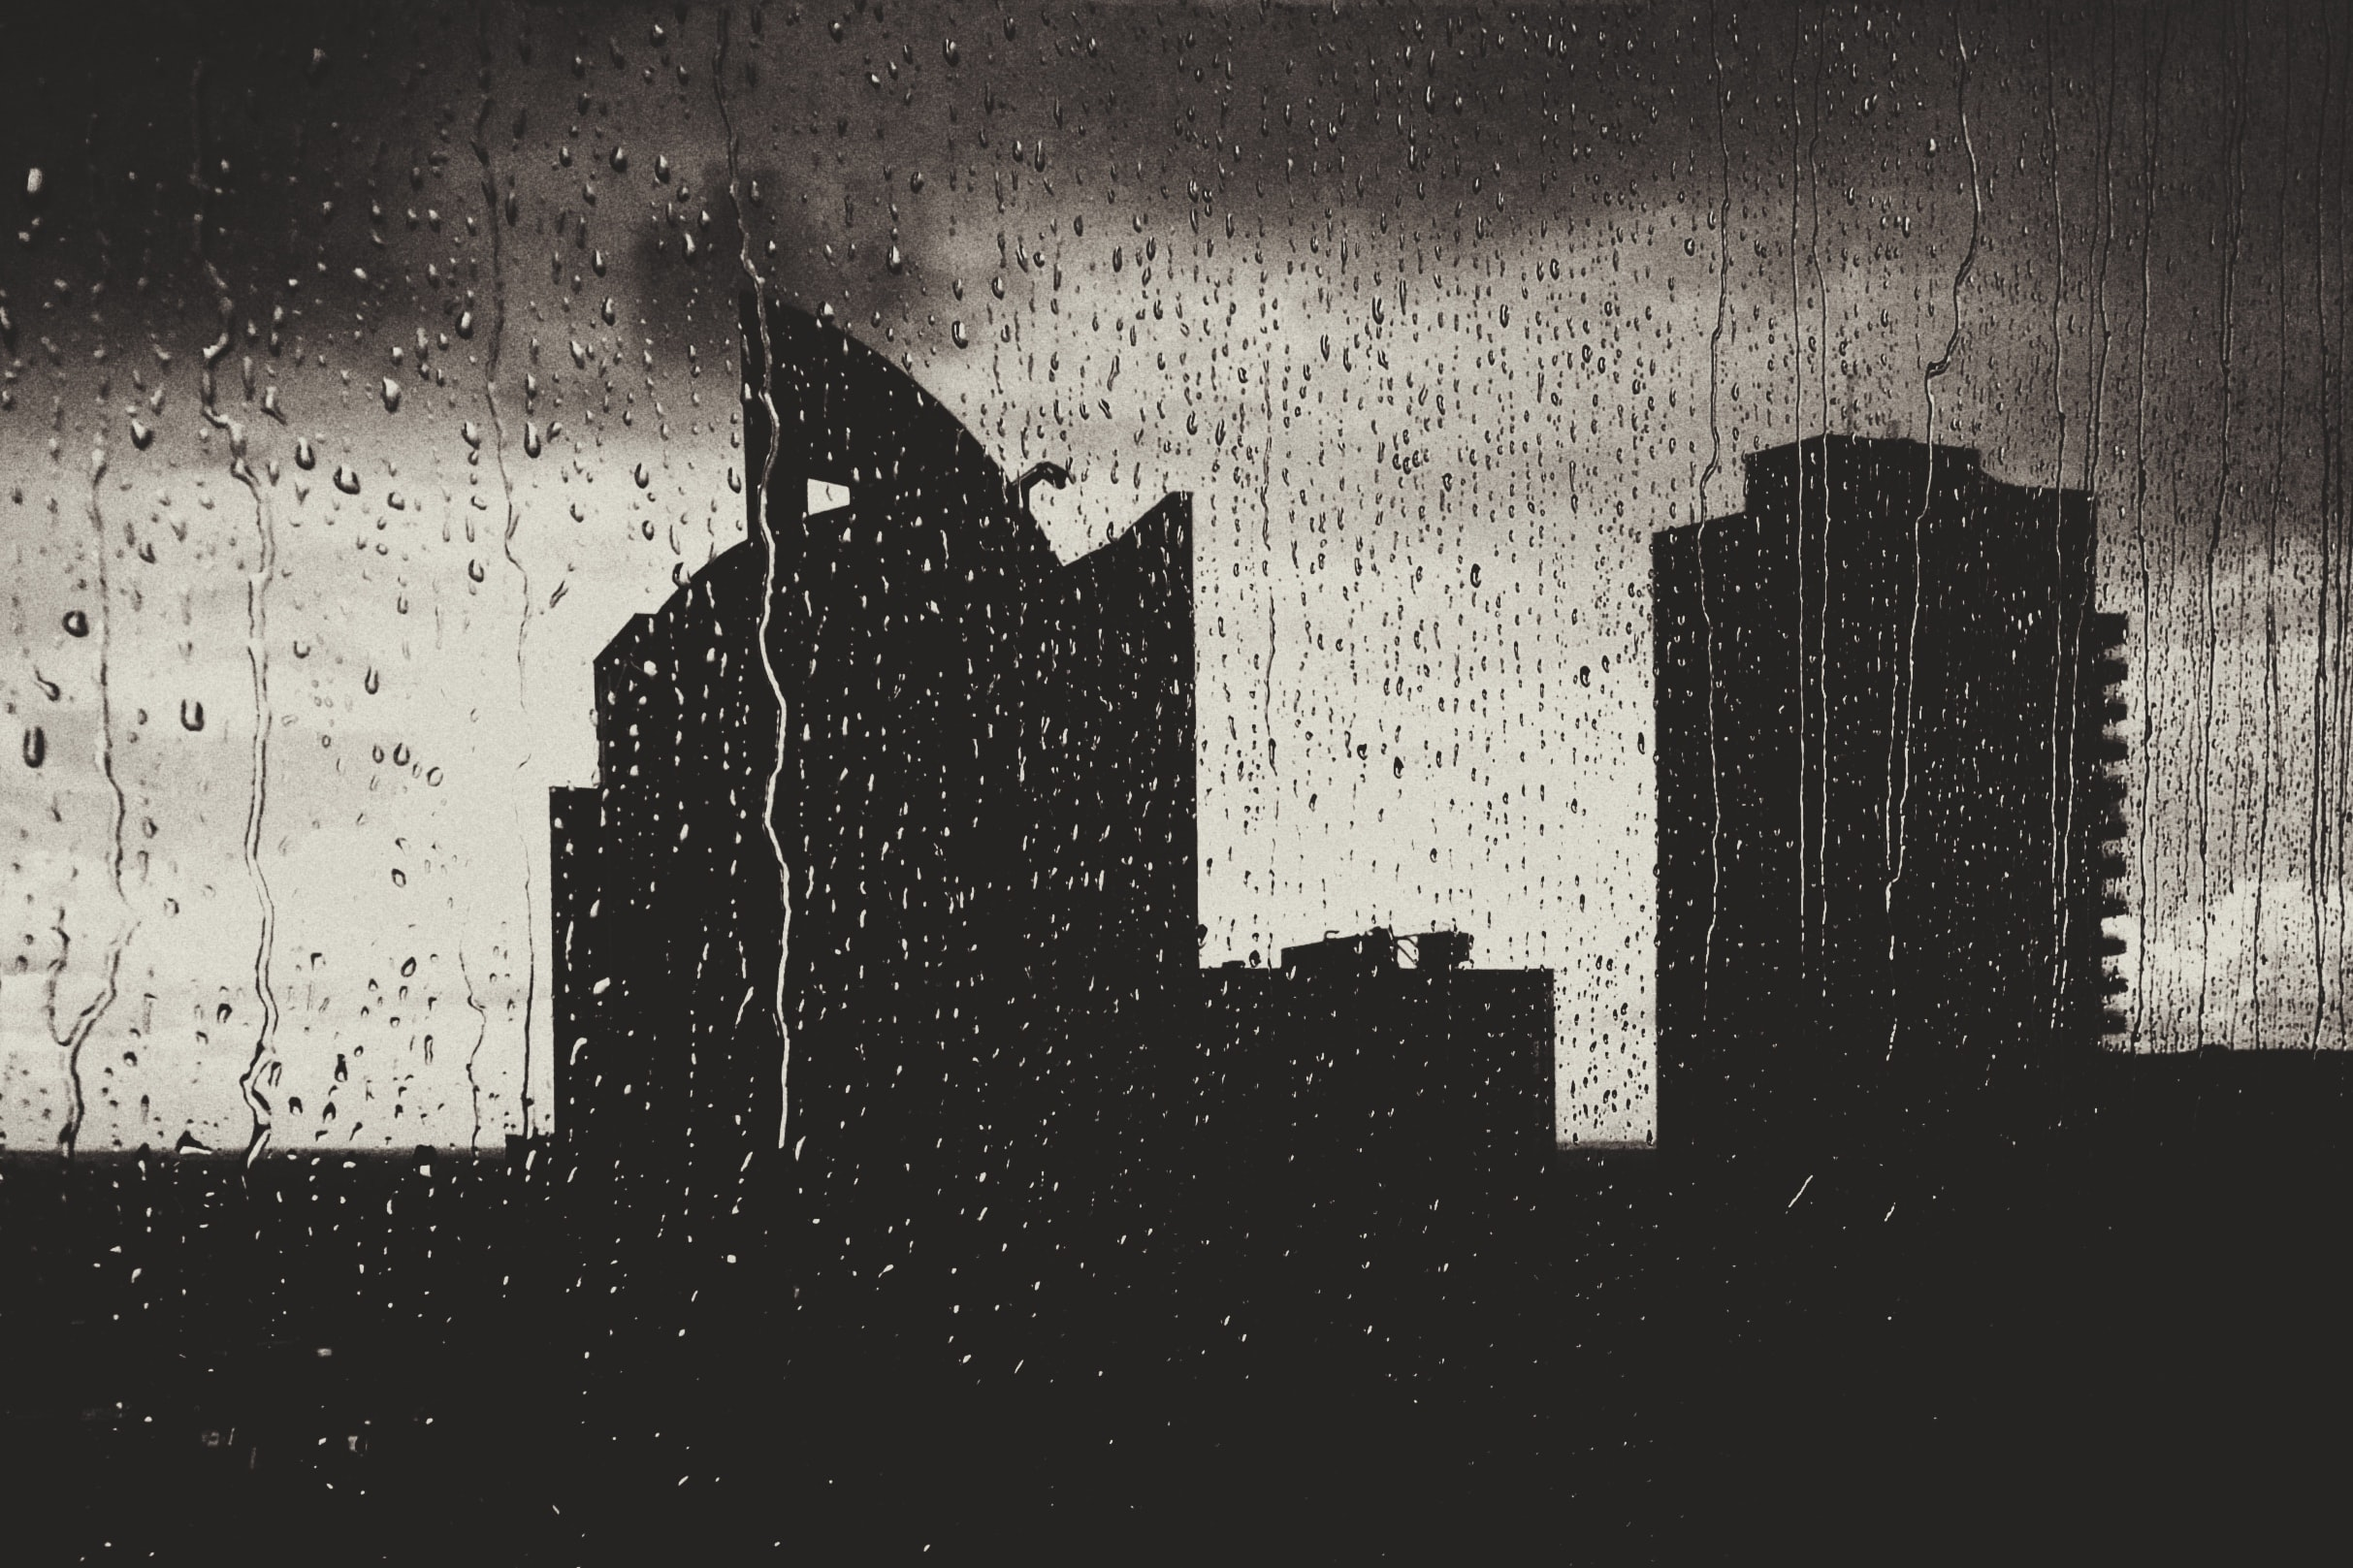 silhouette of high rise buildings